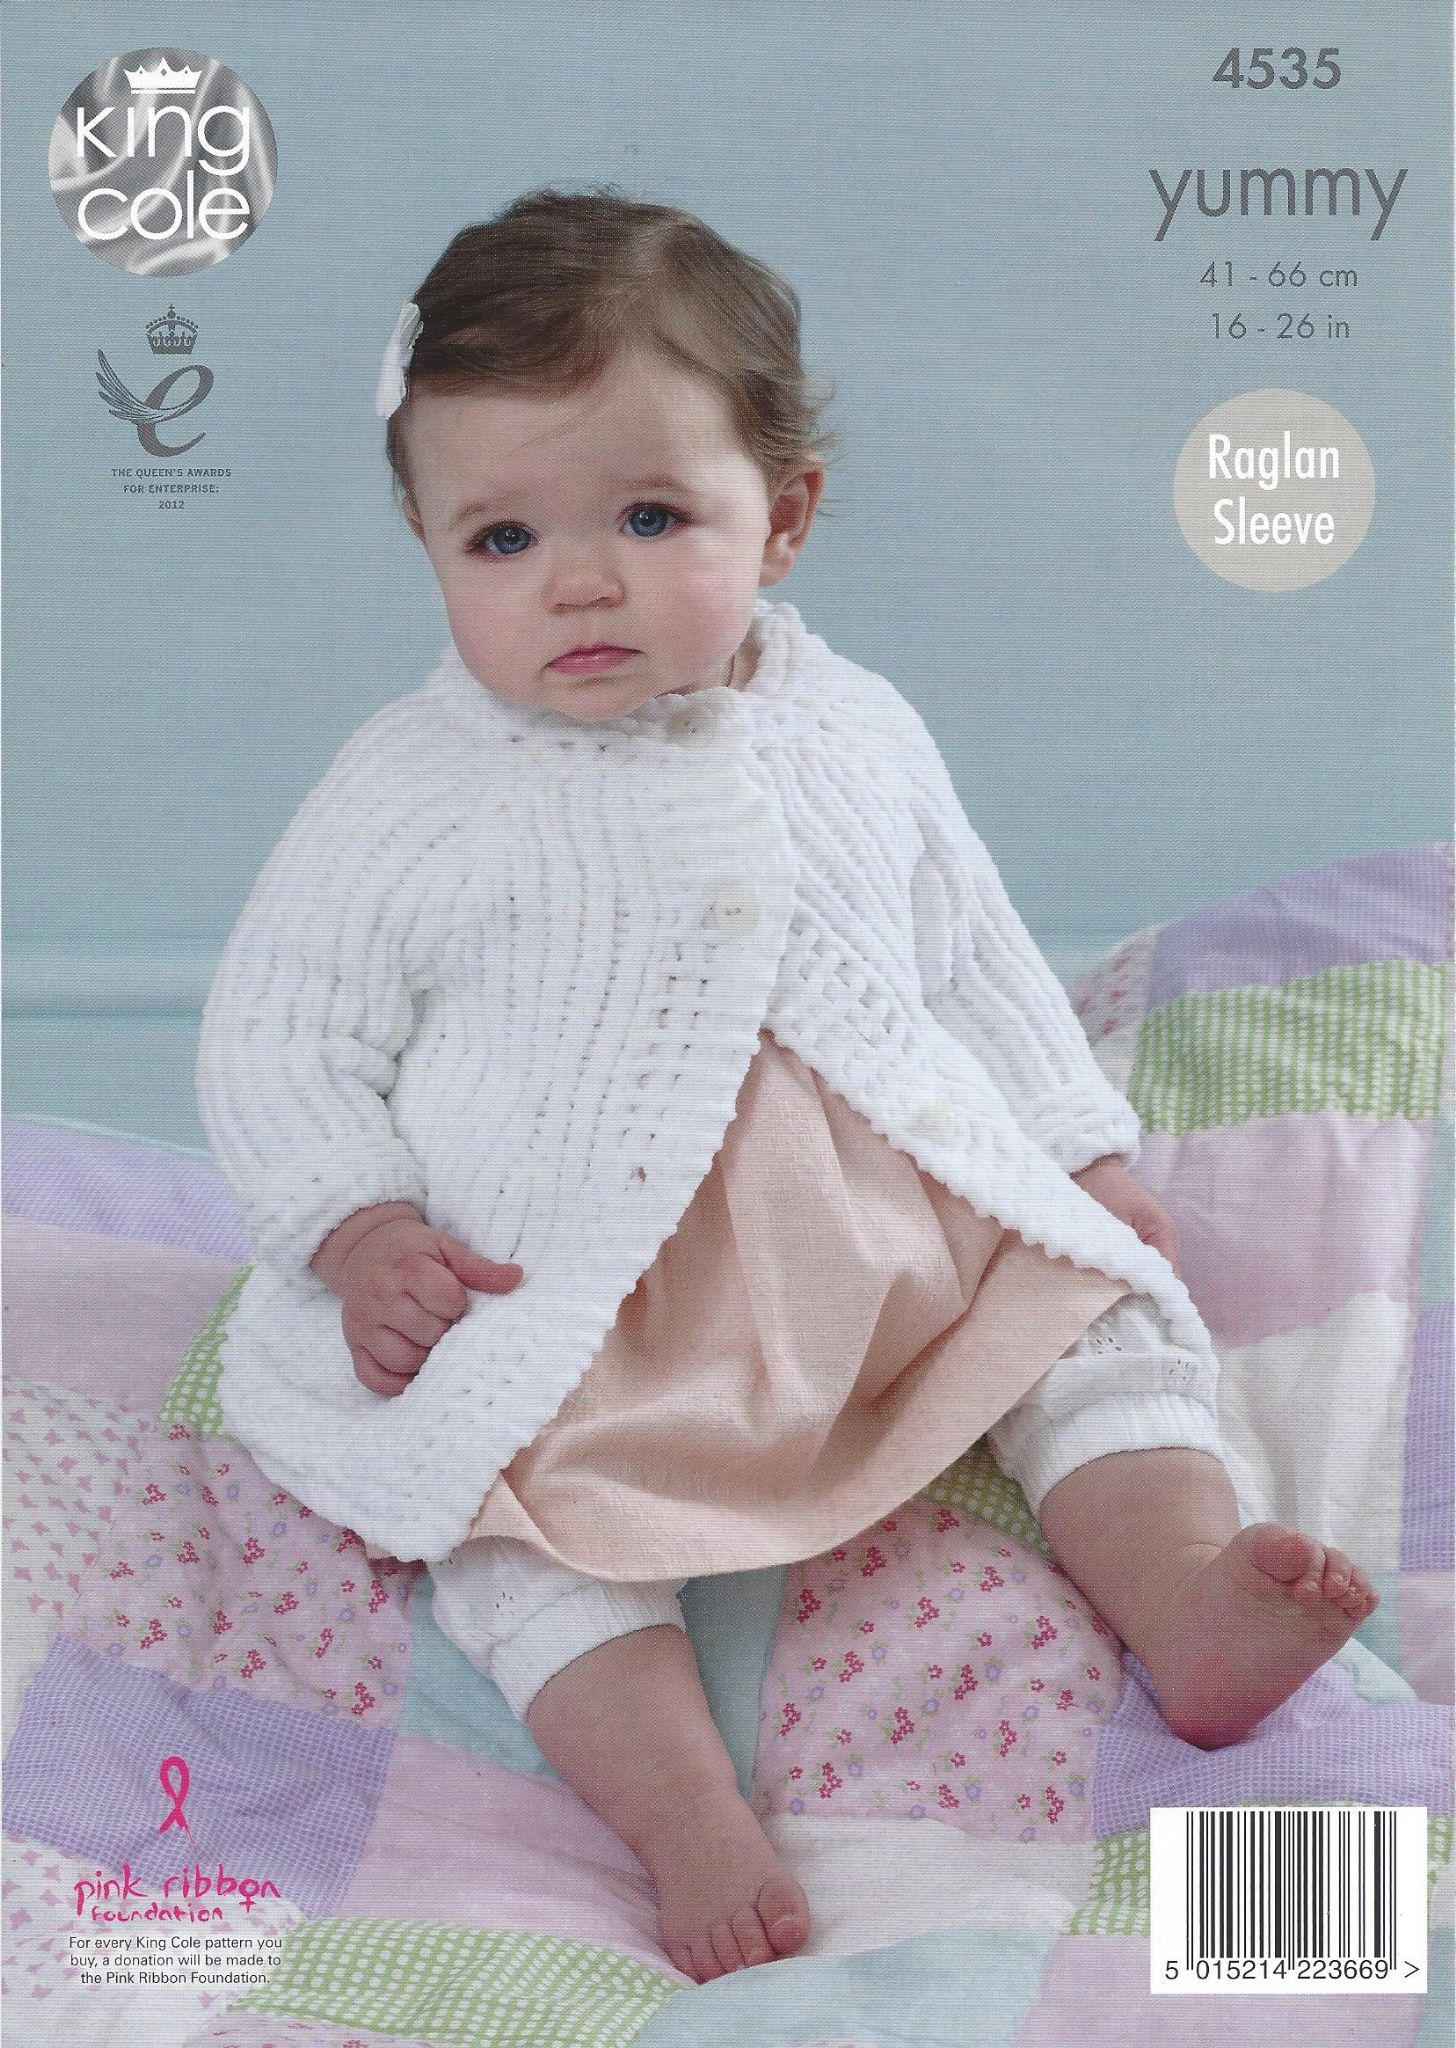 c00a52fdd King Cole Yummy - 4535 Baby Jackets Knitting Pattern